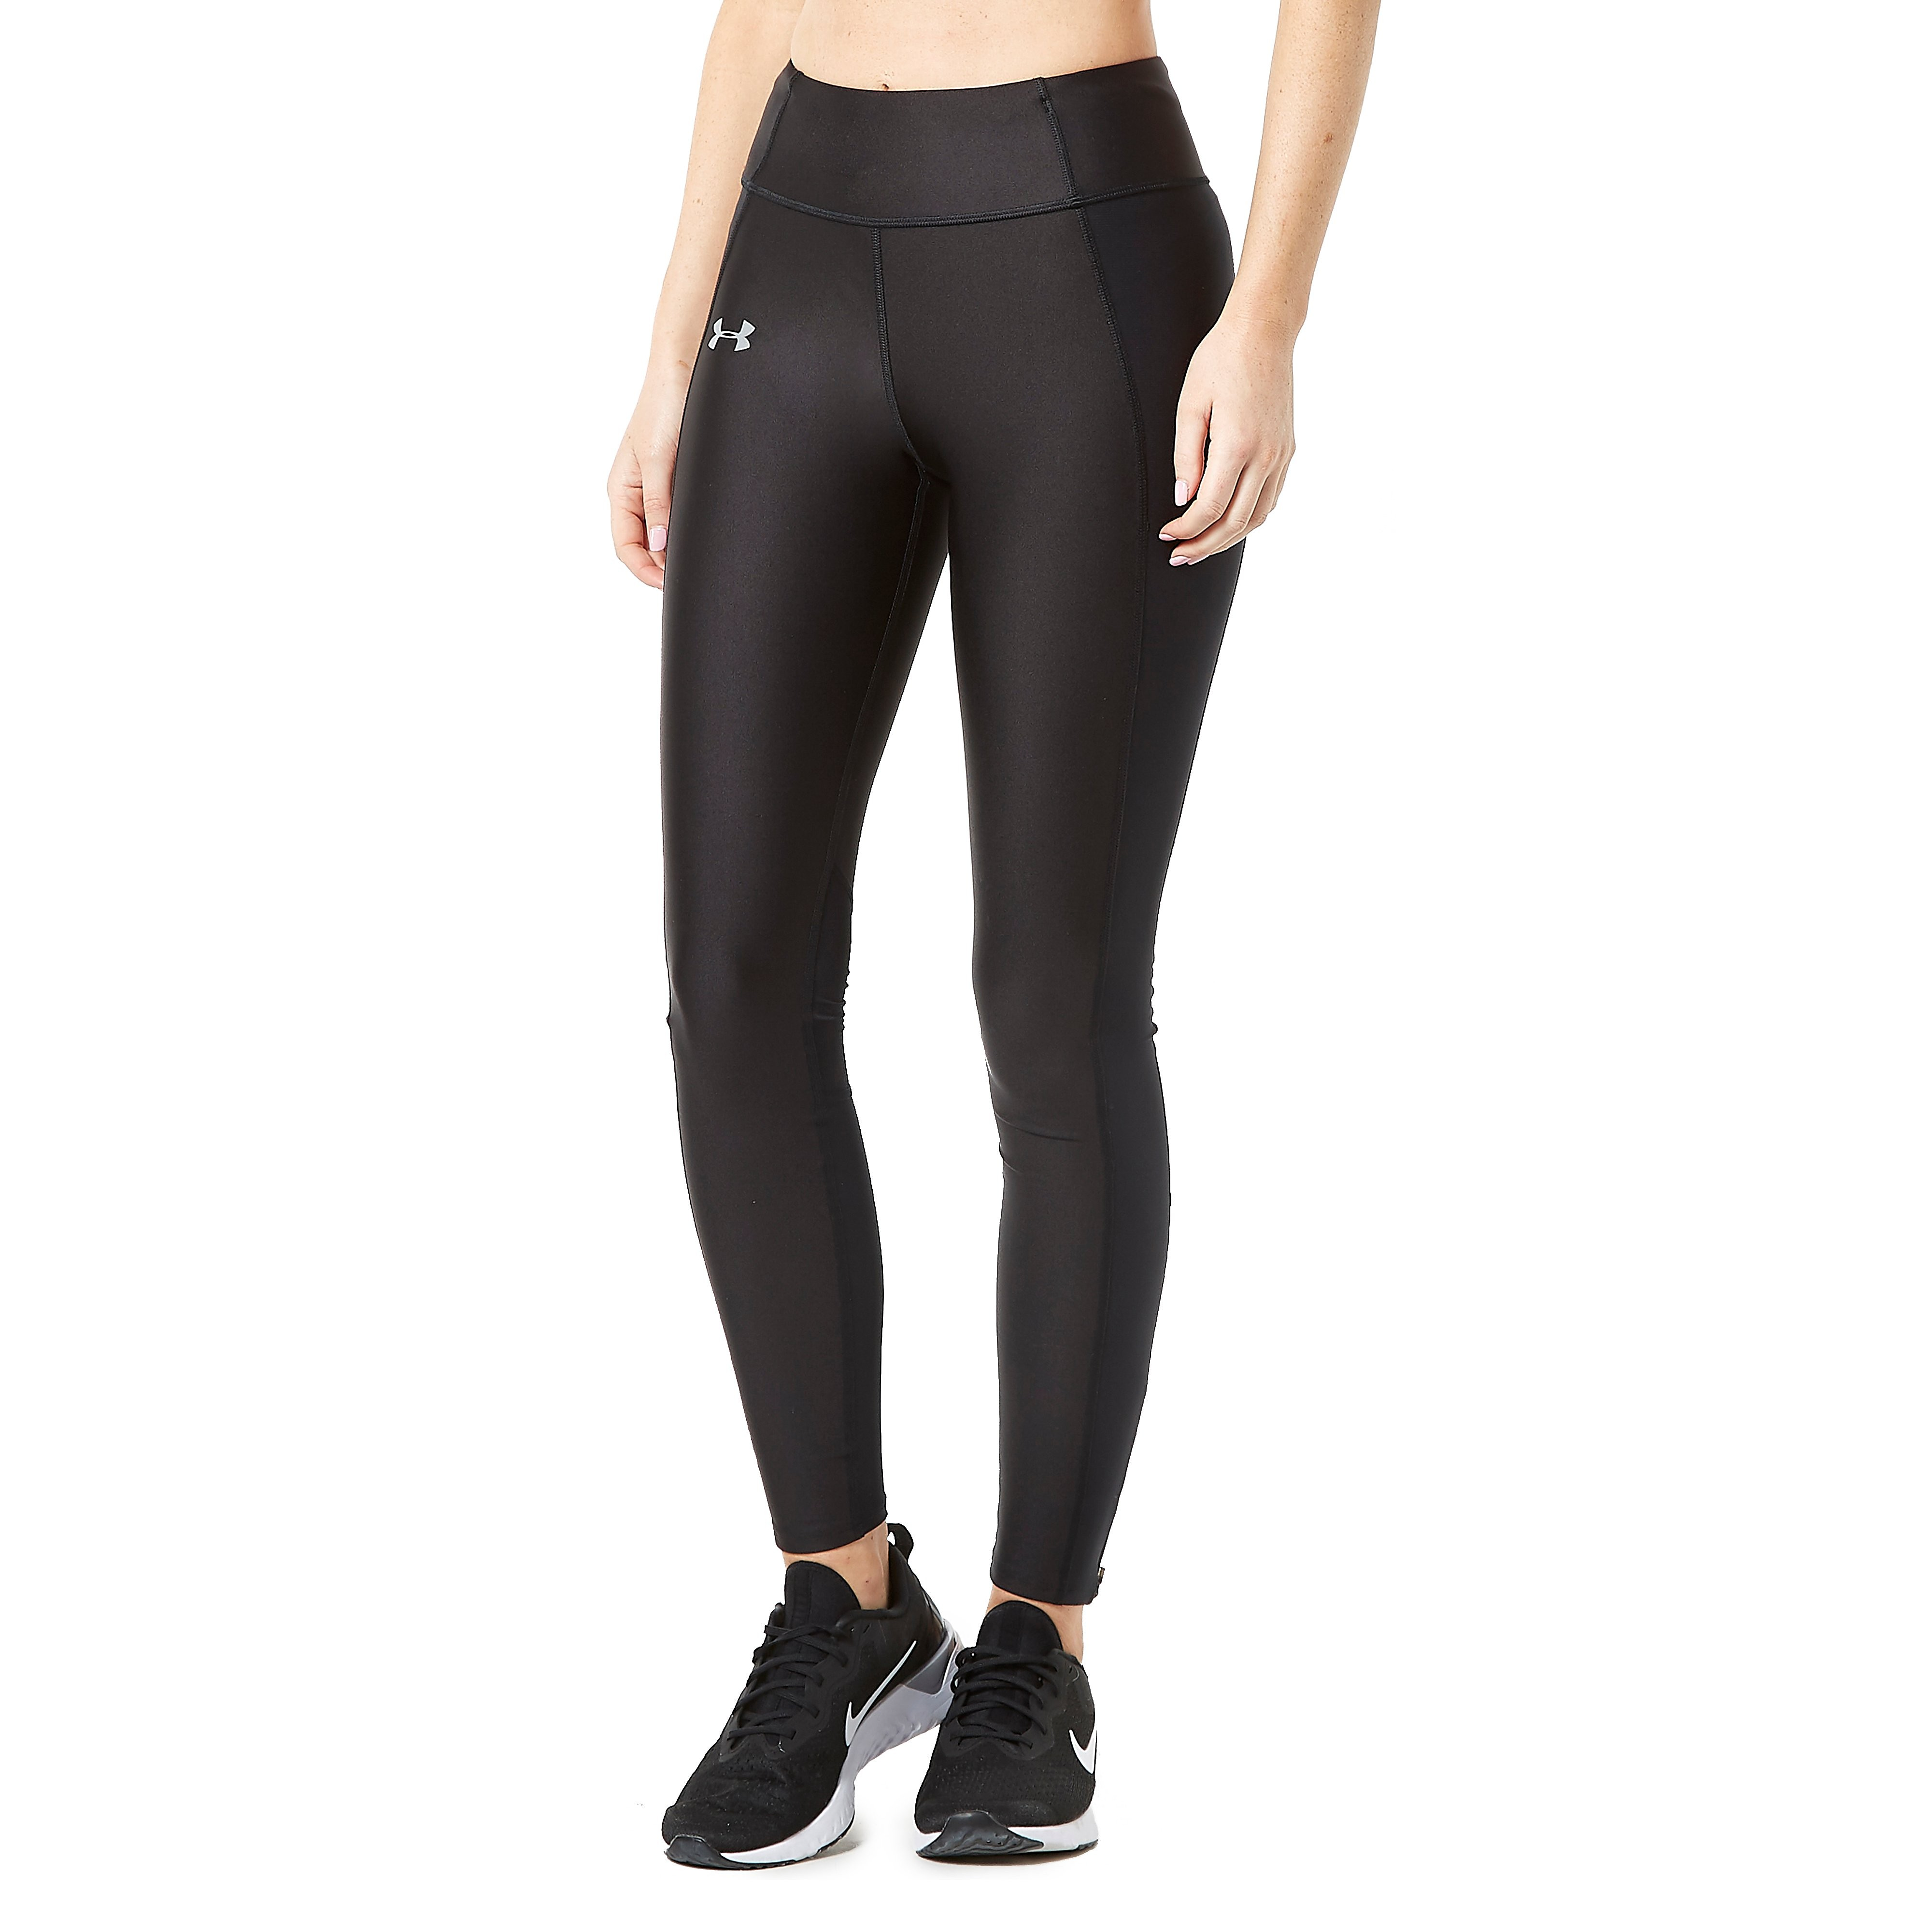 Womens BLK Under Armour Speed Stride Training Tights